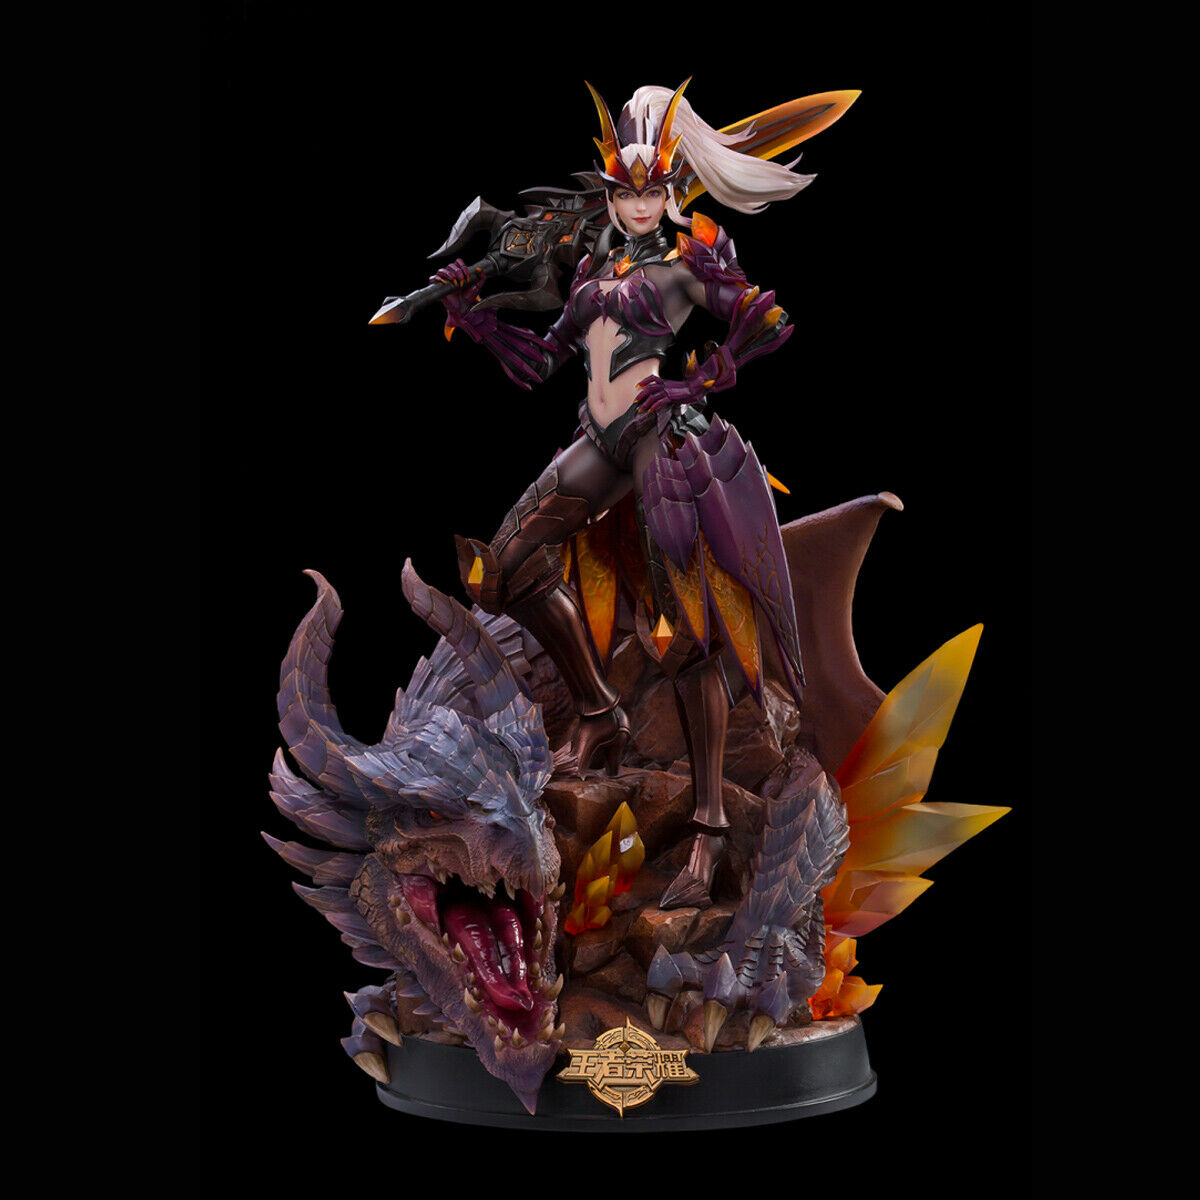 DAMTOYS+Tencent Arena of Valor 1 8 Crystal Dragon Hunter Mulan Statue Deluxe Ver